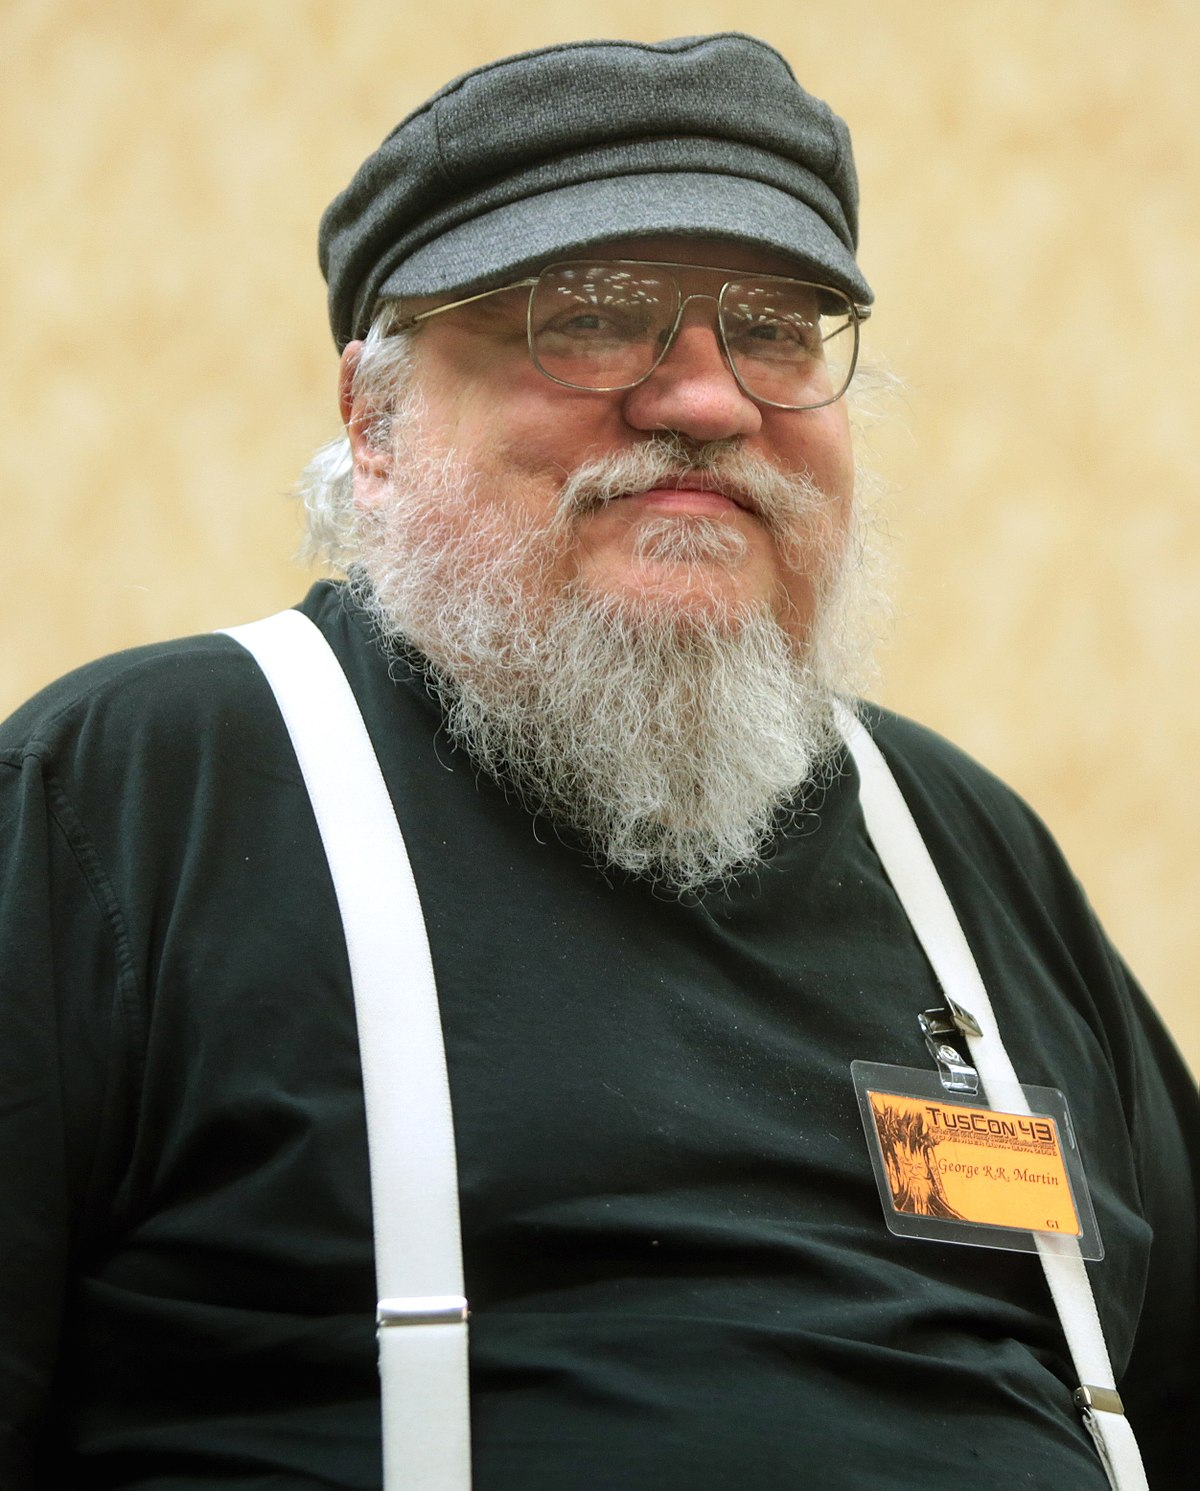 George Rr Martin Libros Game Of Thrones George R R Martin Wikipedia